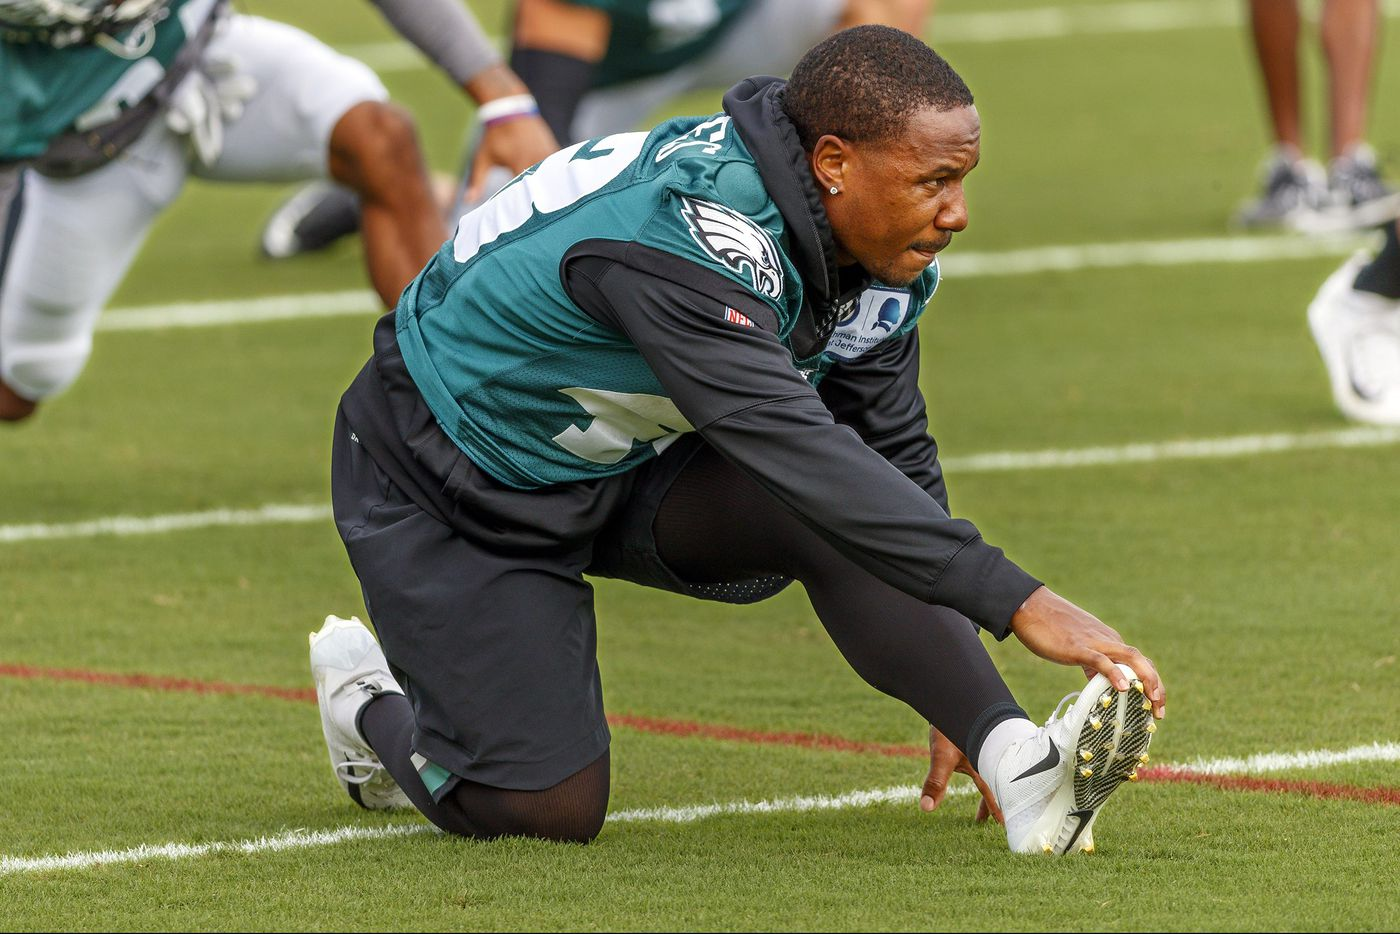 Eagles, already thin at CB, lose Darby to ACL tear